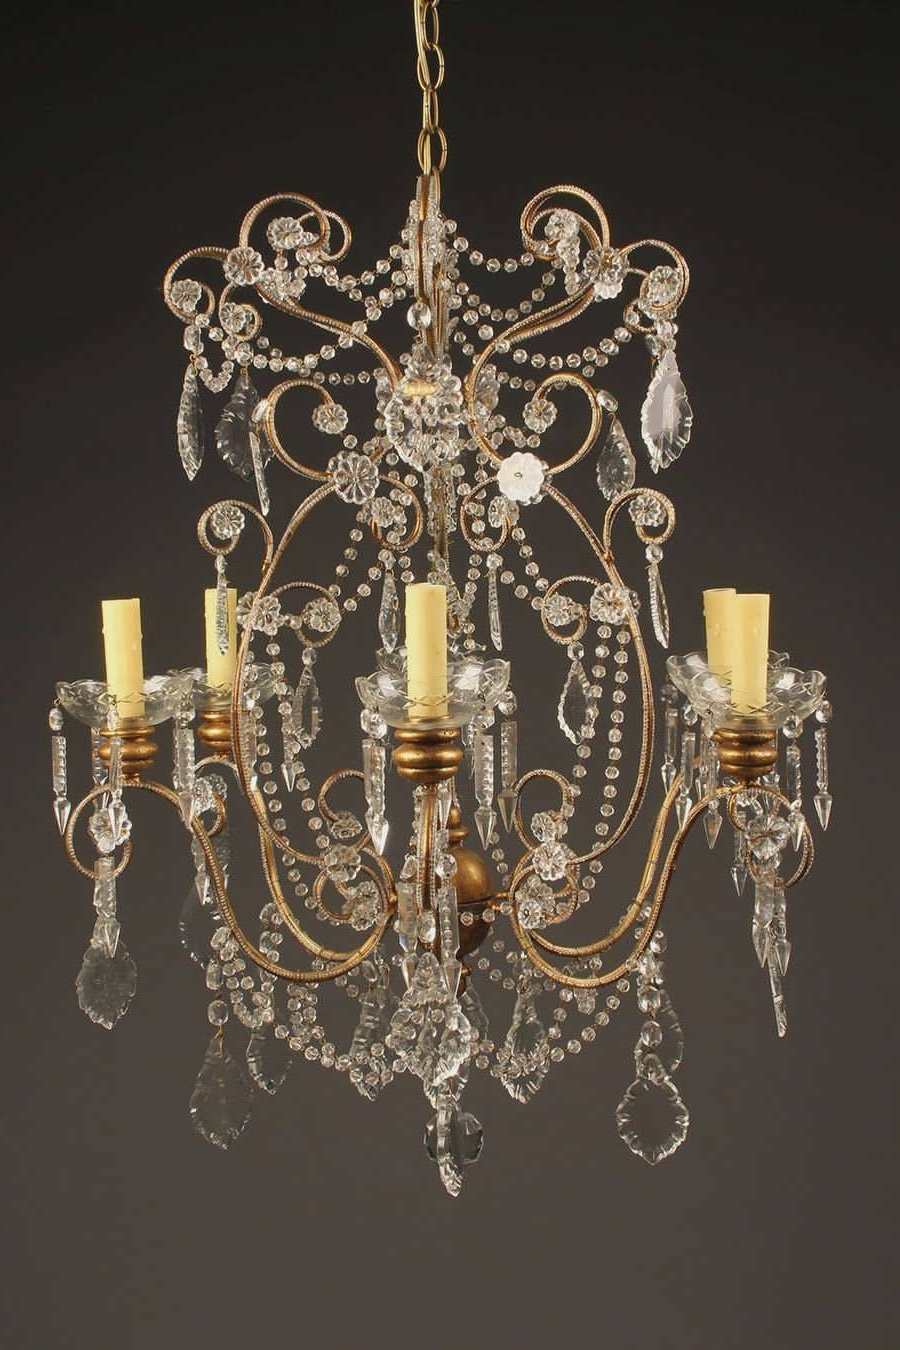 Italian Chandeliers Style Throughout Fashionable 49 Examples Good Vintage Murano Glass Chandelier Ceiling Rustic (View 6 of 20)